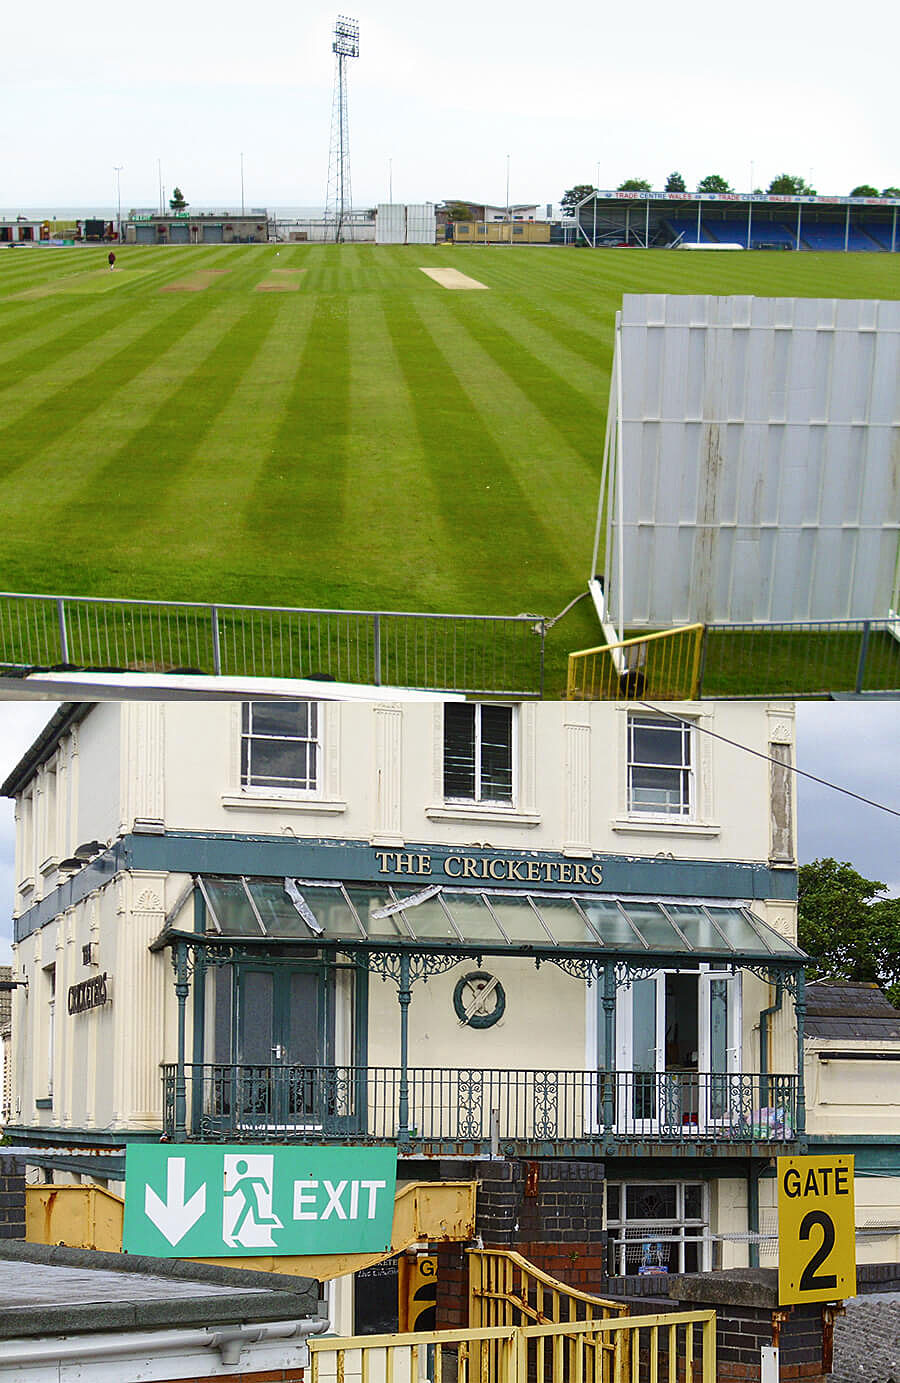 Where history was made: present-day St Helen's (top), and the Cricketers pub, where one of the sixes landed